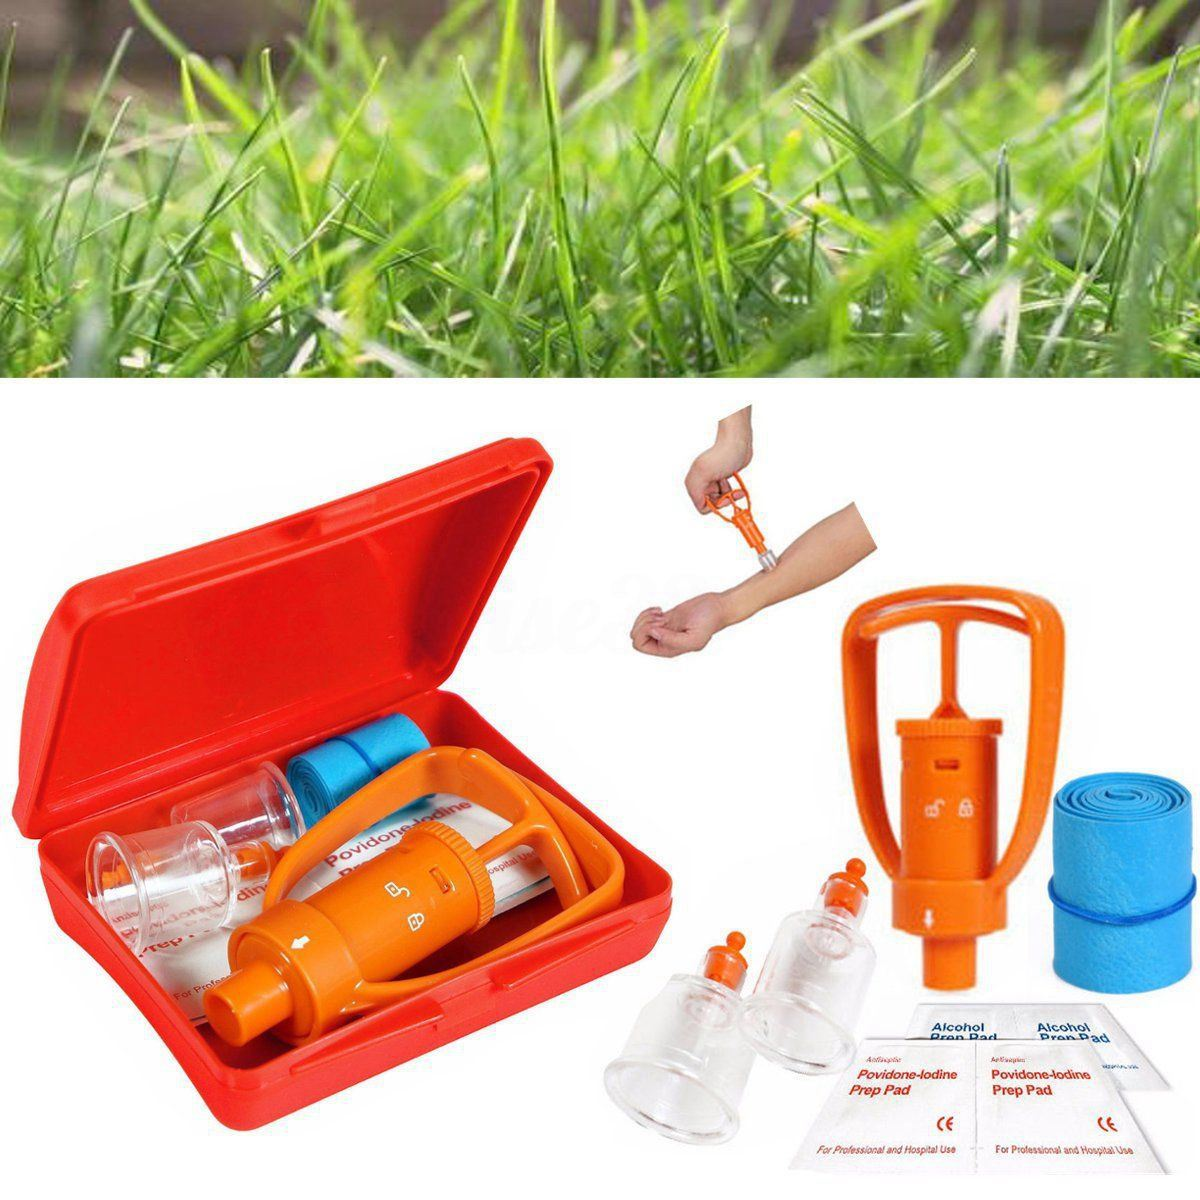 New Sale Venom Extractor Pump First Aid Safety Kit Emergency Snake Bite Outdoor Camping Survival Tool SOS